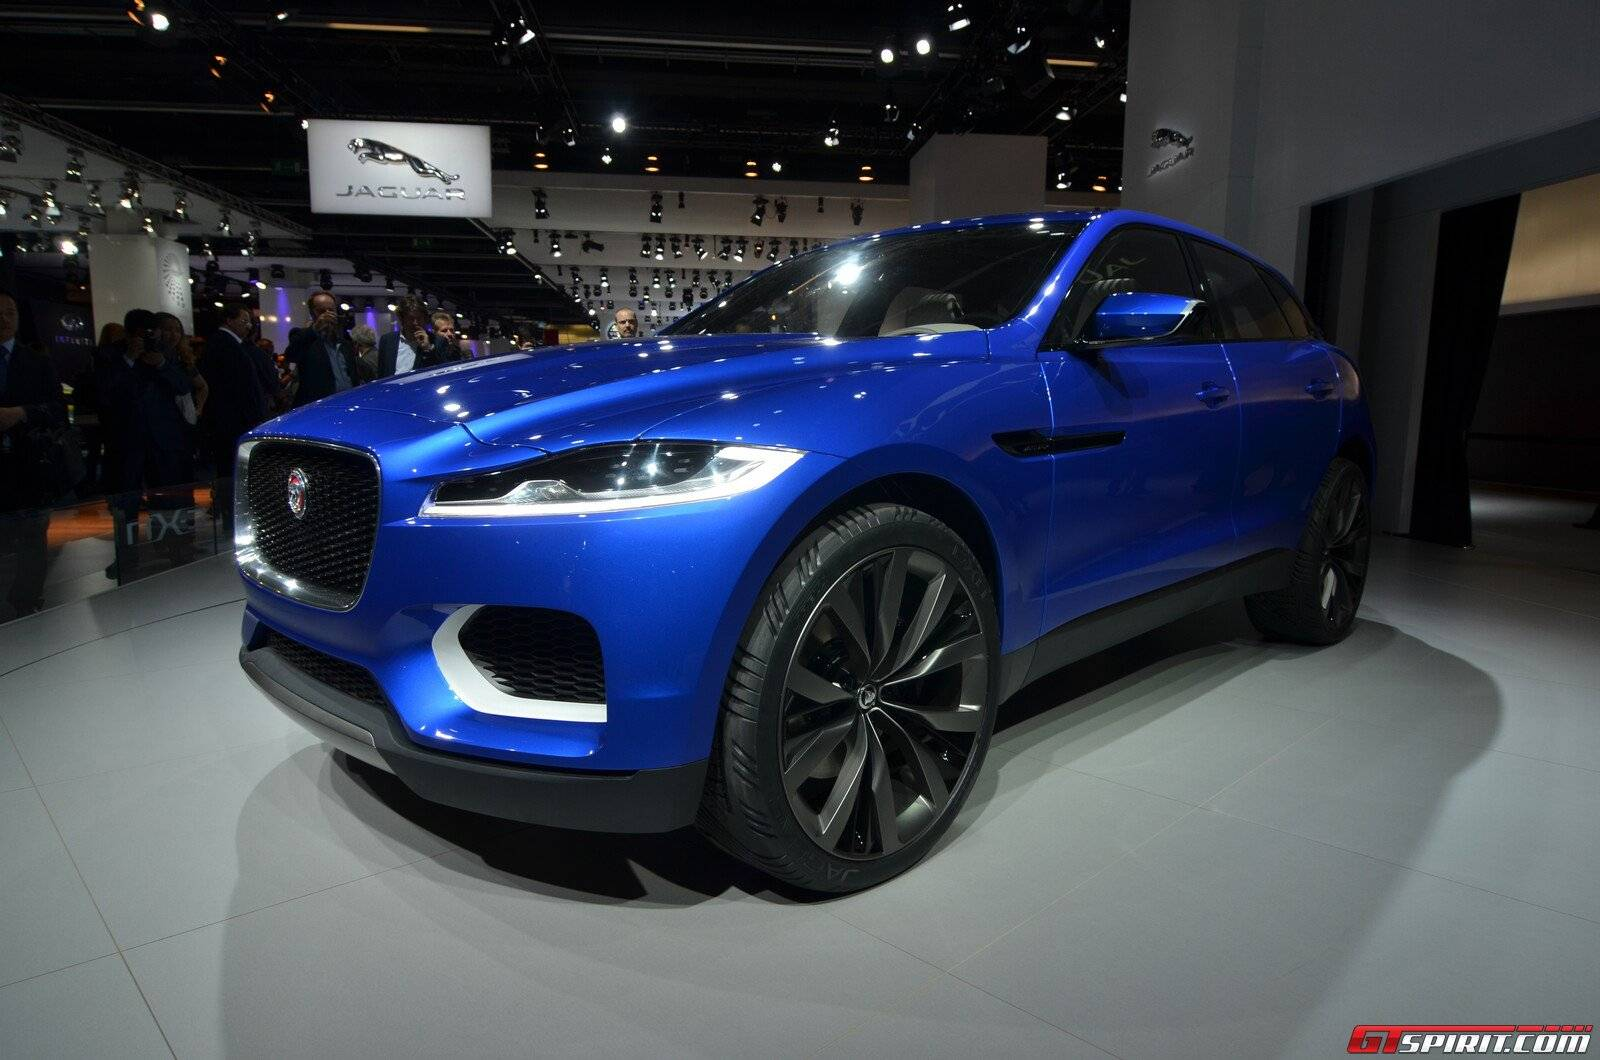 bmw x7 rivalling jaguar j pace suv previewed gtspirit. Black Bedroom Furniture Sets. Home Design Ideas